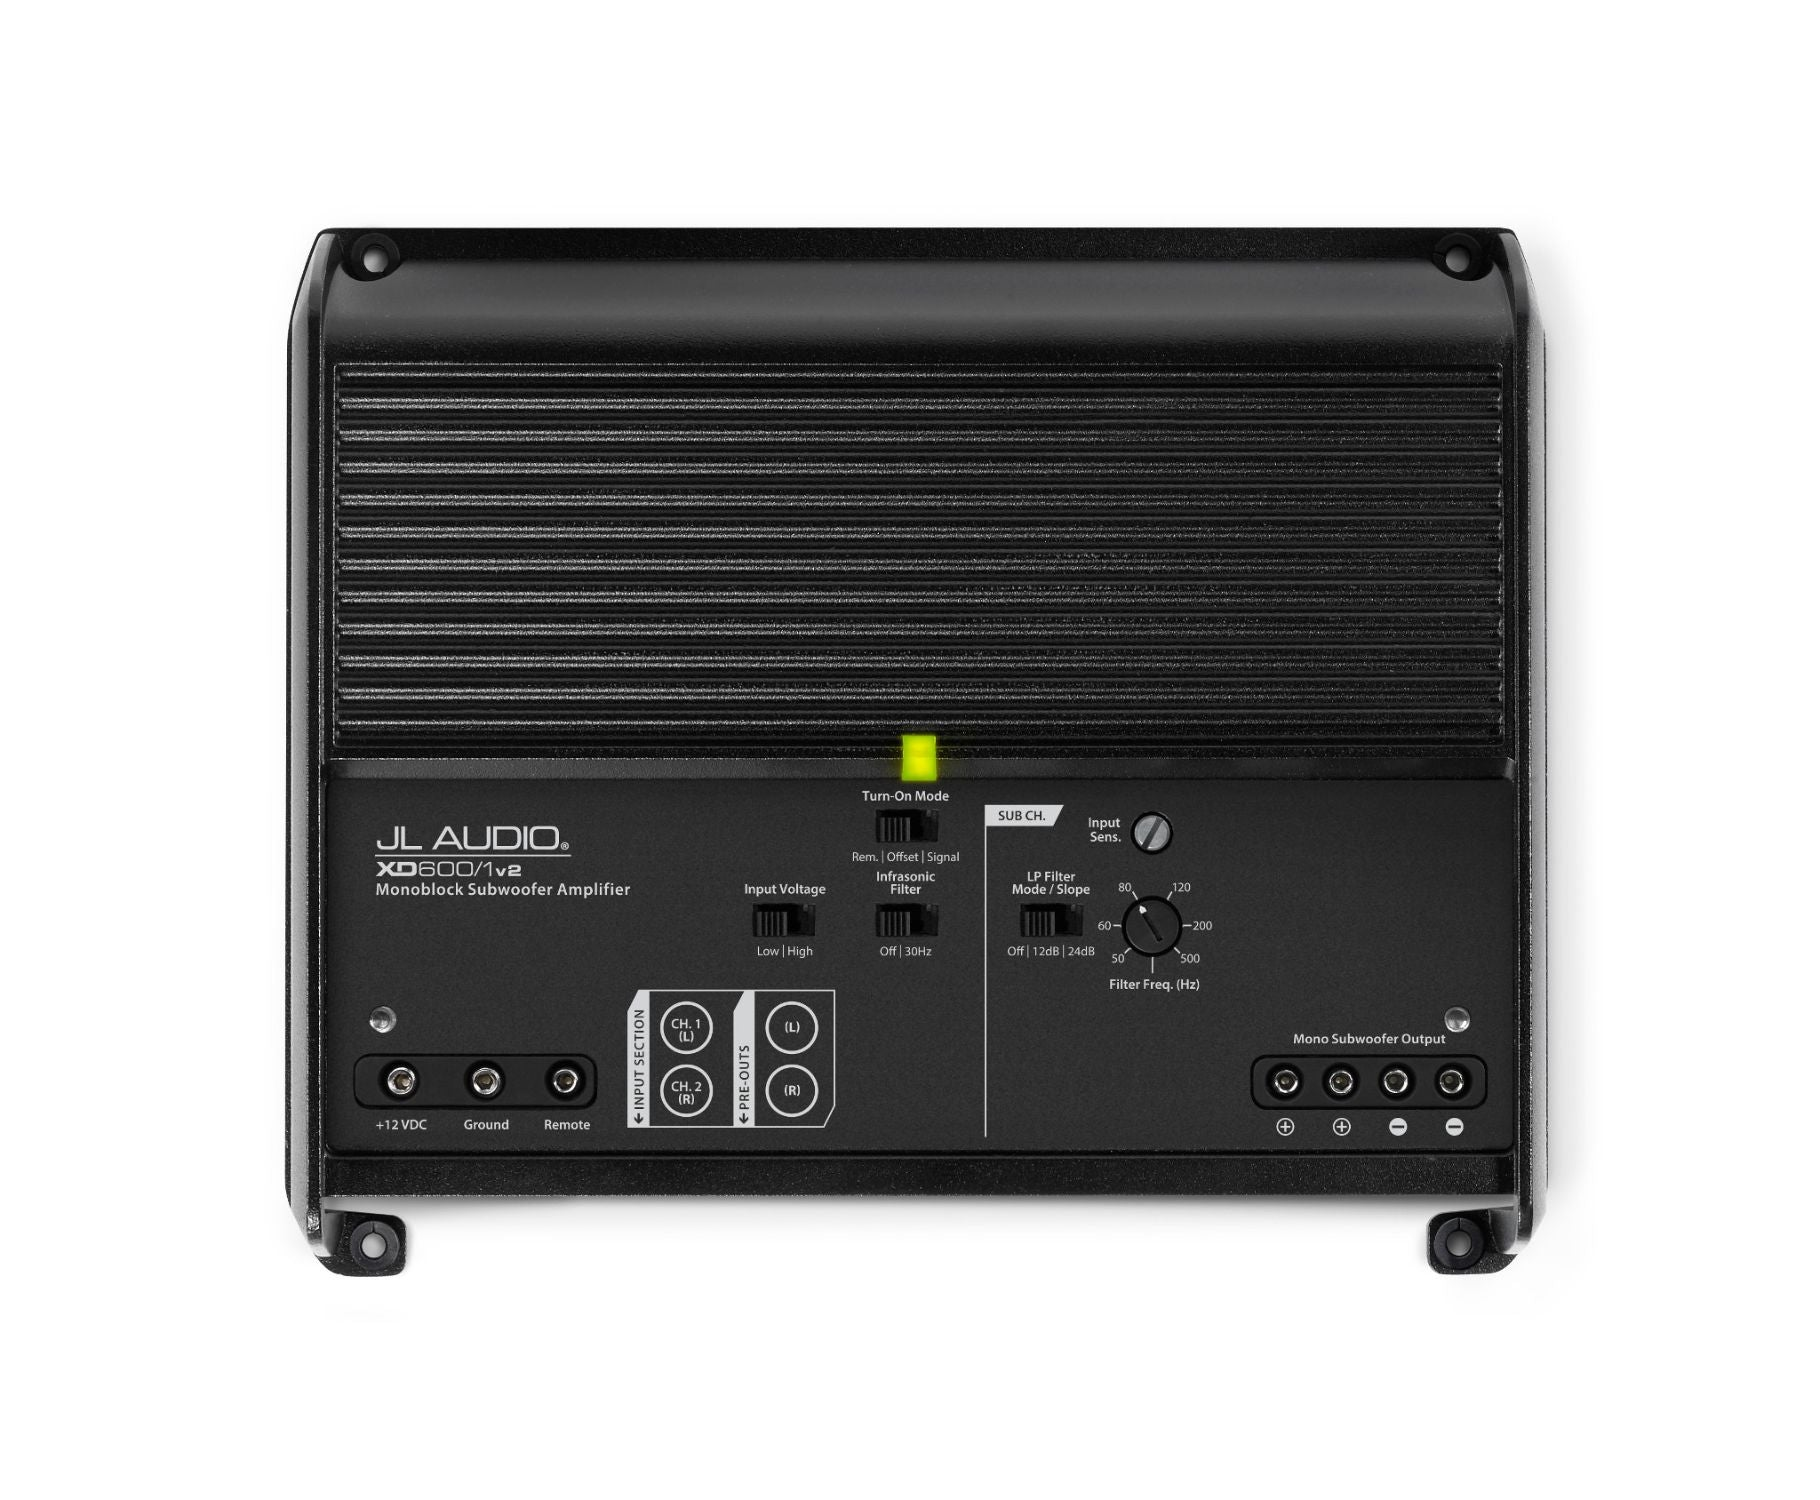 Front of XD600/1v2 Amplifier Overhead showing Control Panel